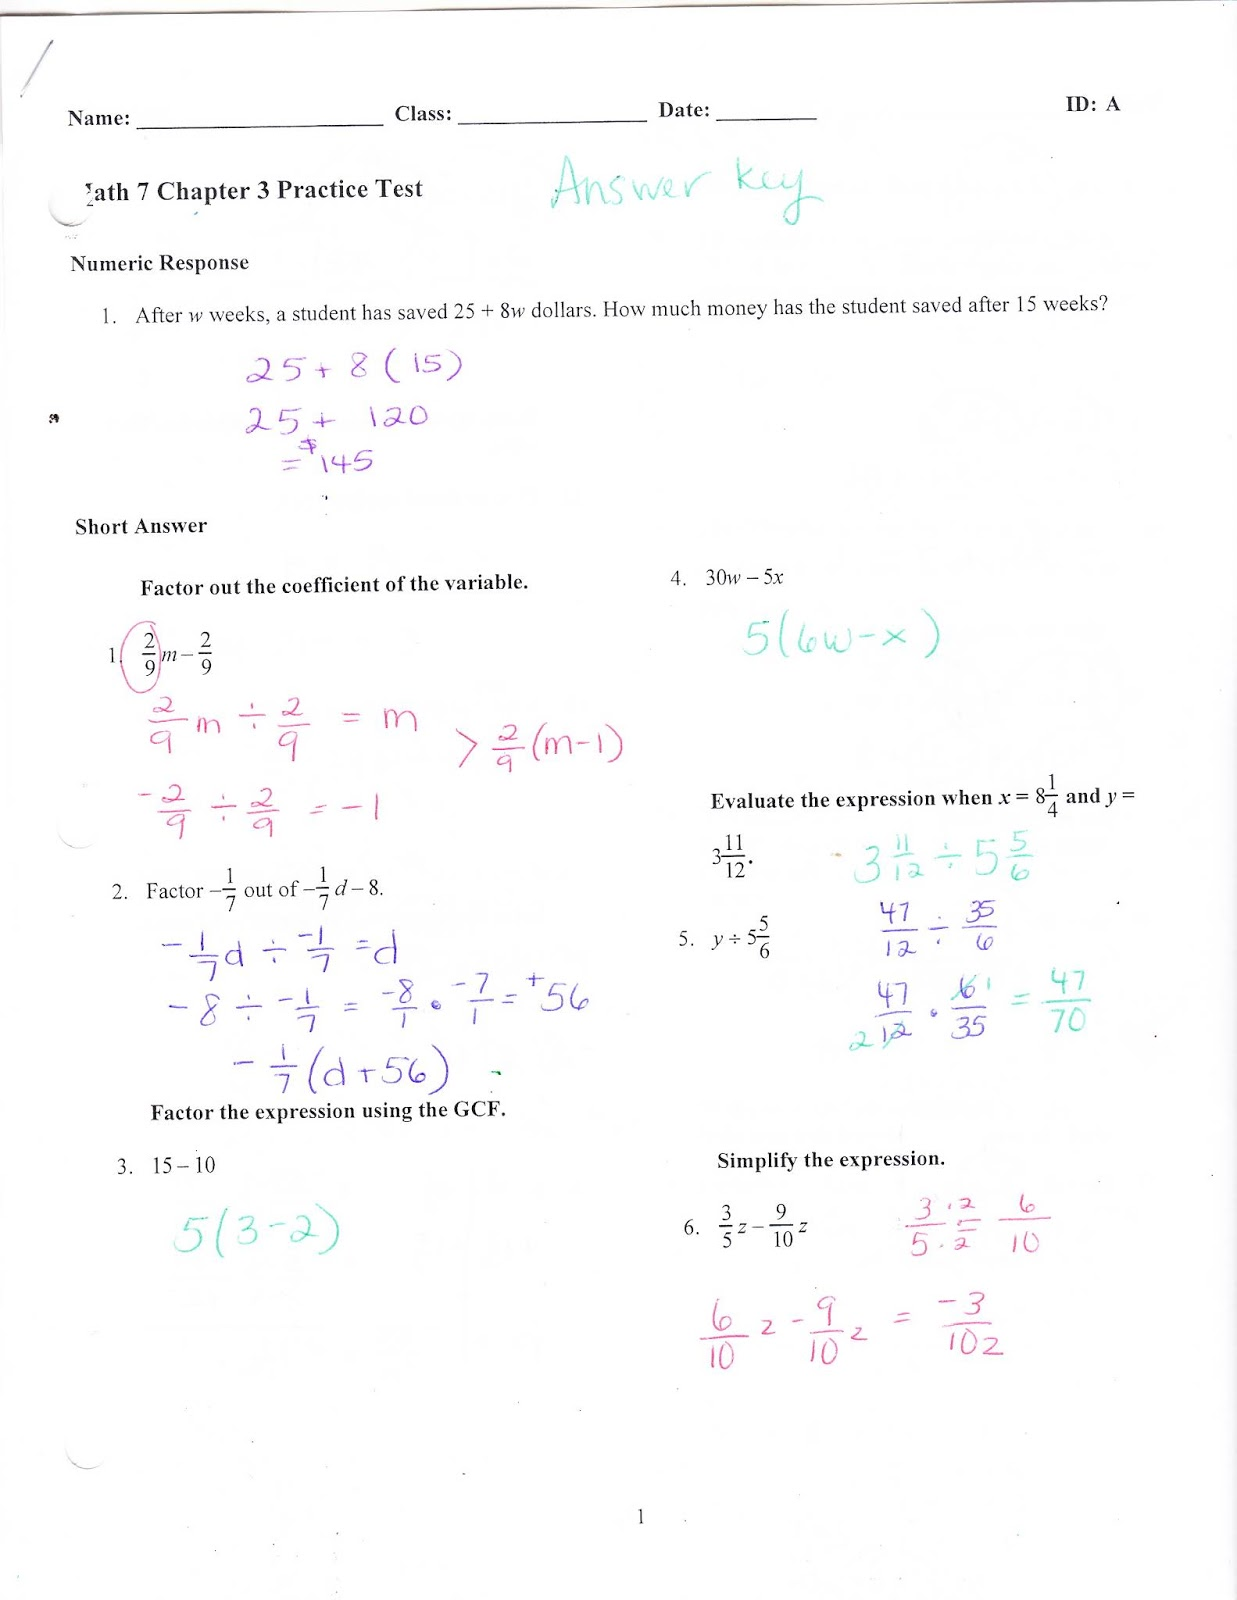 Ms. Jean's Classroom Blog: Chapter 3 Practice Test Answers